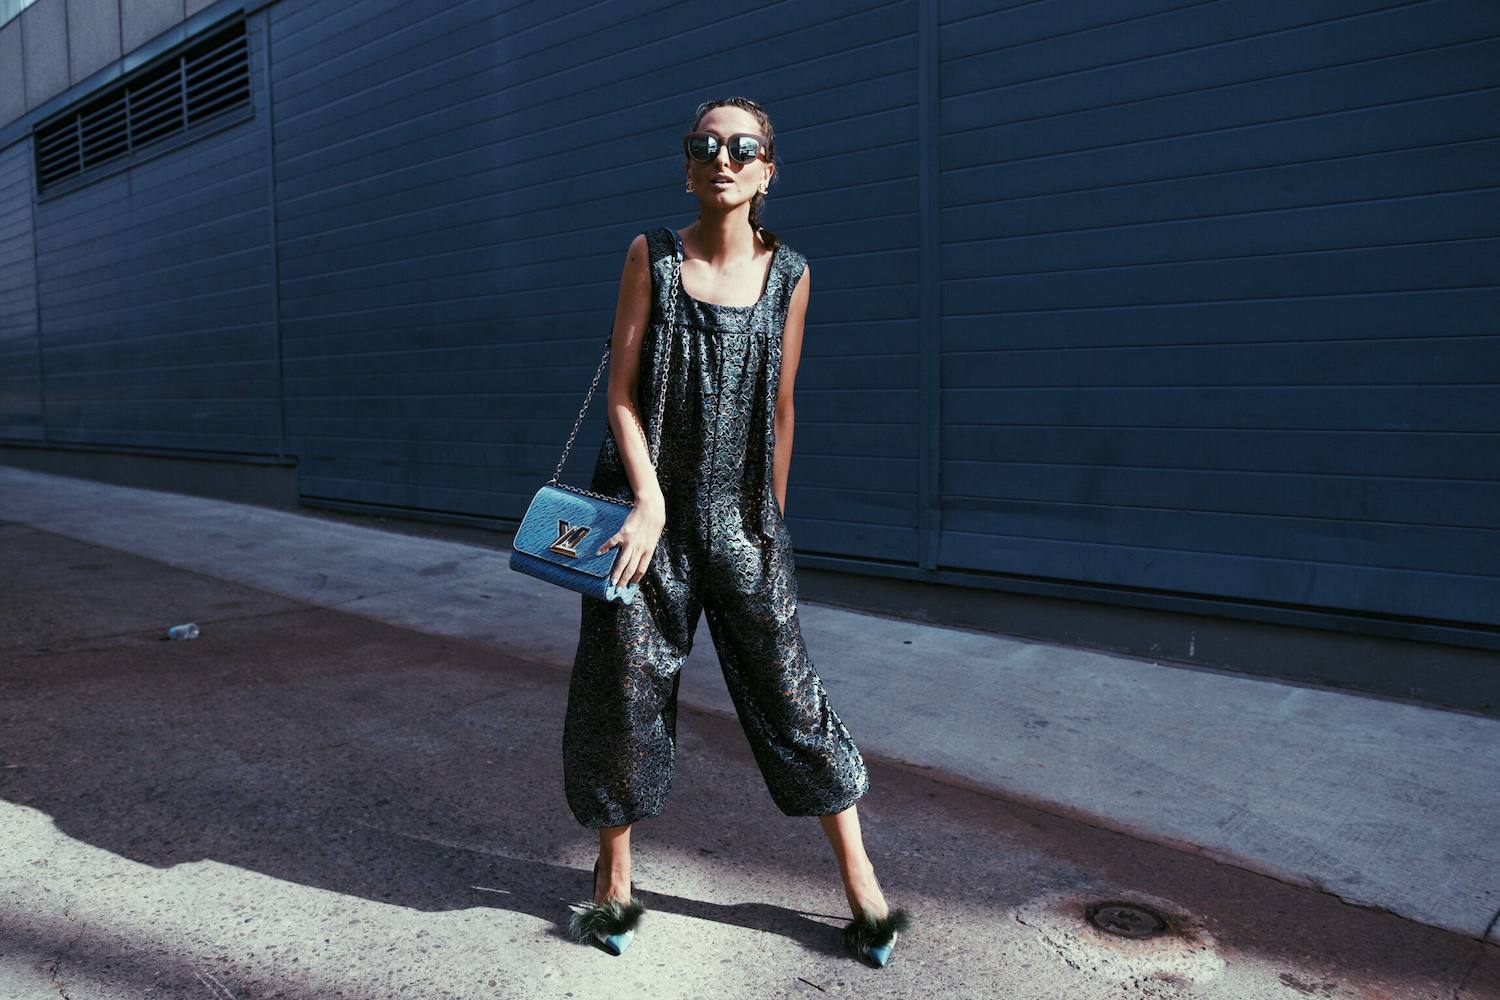 Chanel Jumpsuit, Fendi Bag Bug Shoes, Louis Vuitton Epi Leather Twist, Boxer Braids 11